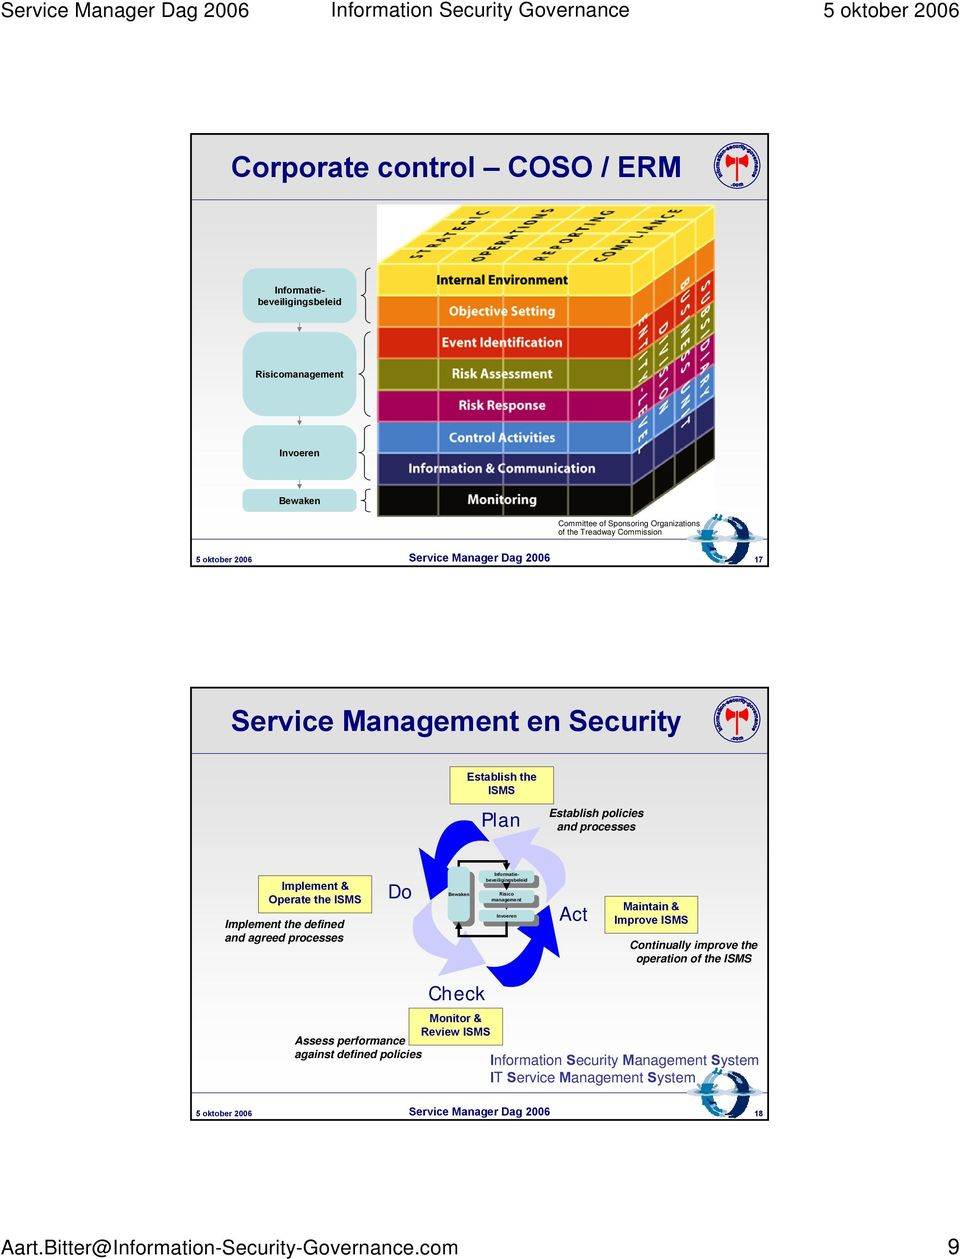 management Risico management Invoeren Invoeren Act Maintain & Improve ISMS Continually improve the operation of the ISMS Assess performance against defined